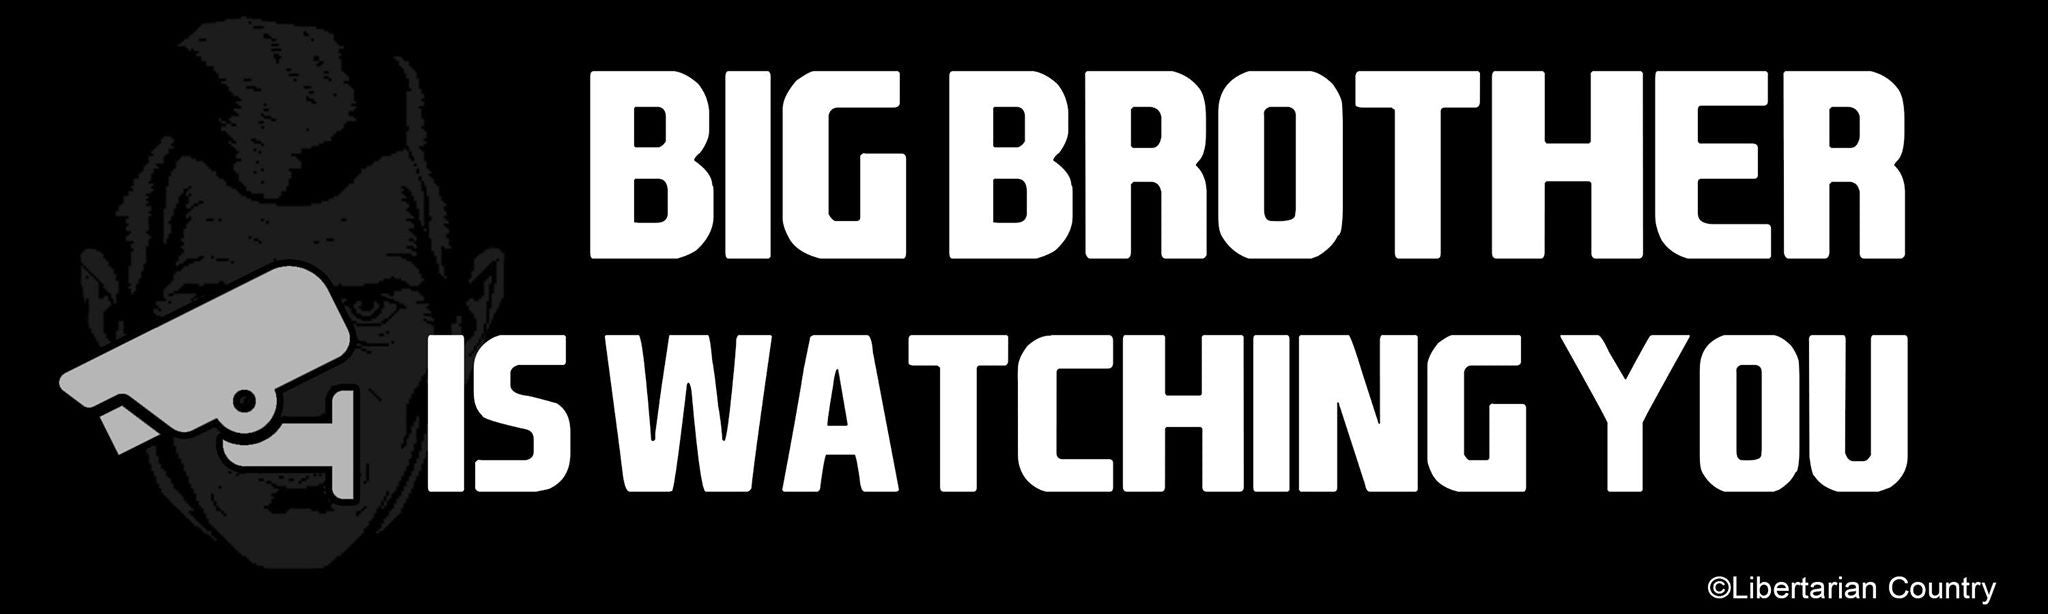 1984 big brother is still watching Could big brother of 1984, still be a possibility  i have been reading 1984,  could a ''big brother under a fascist regime still be a possibility.